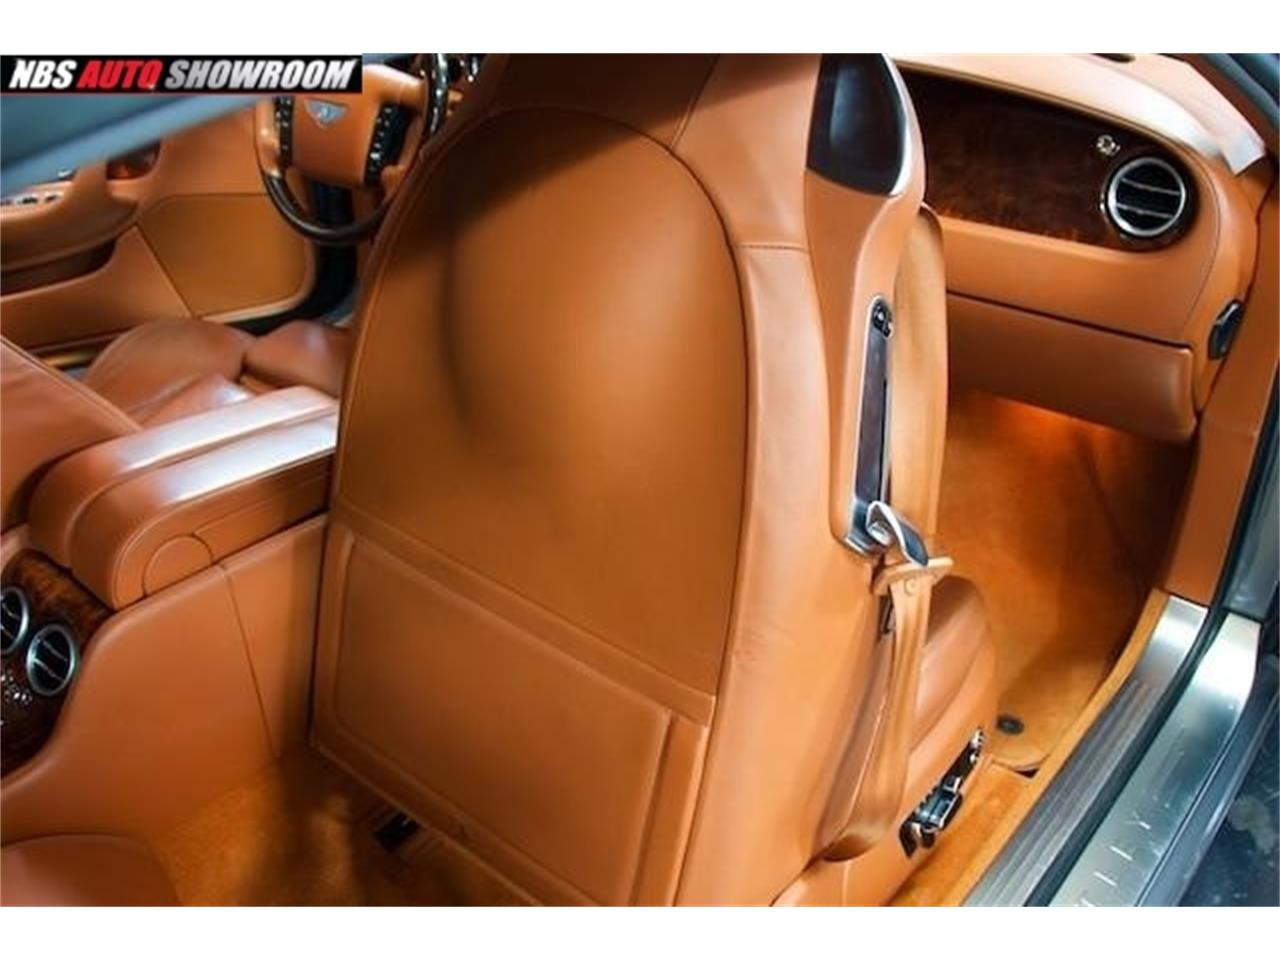 Large Picture of '06 Continental located in California Offered by NBS Auto Showroom - L512